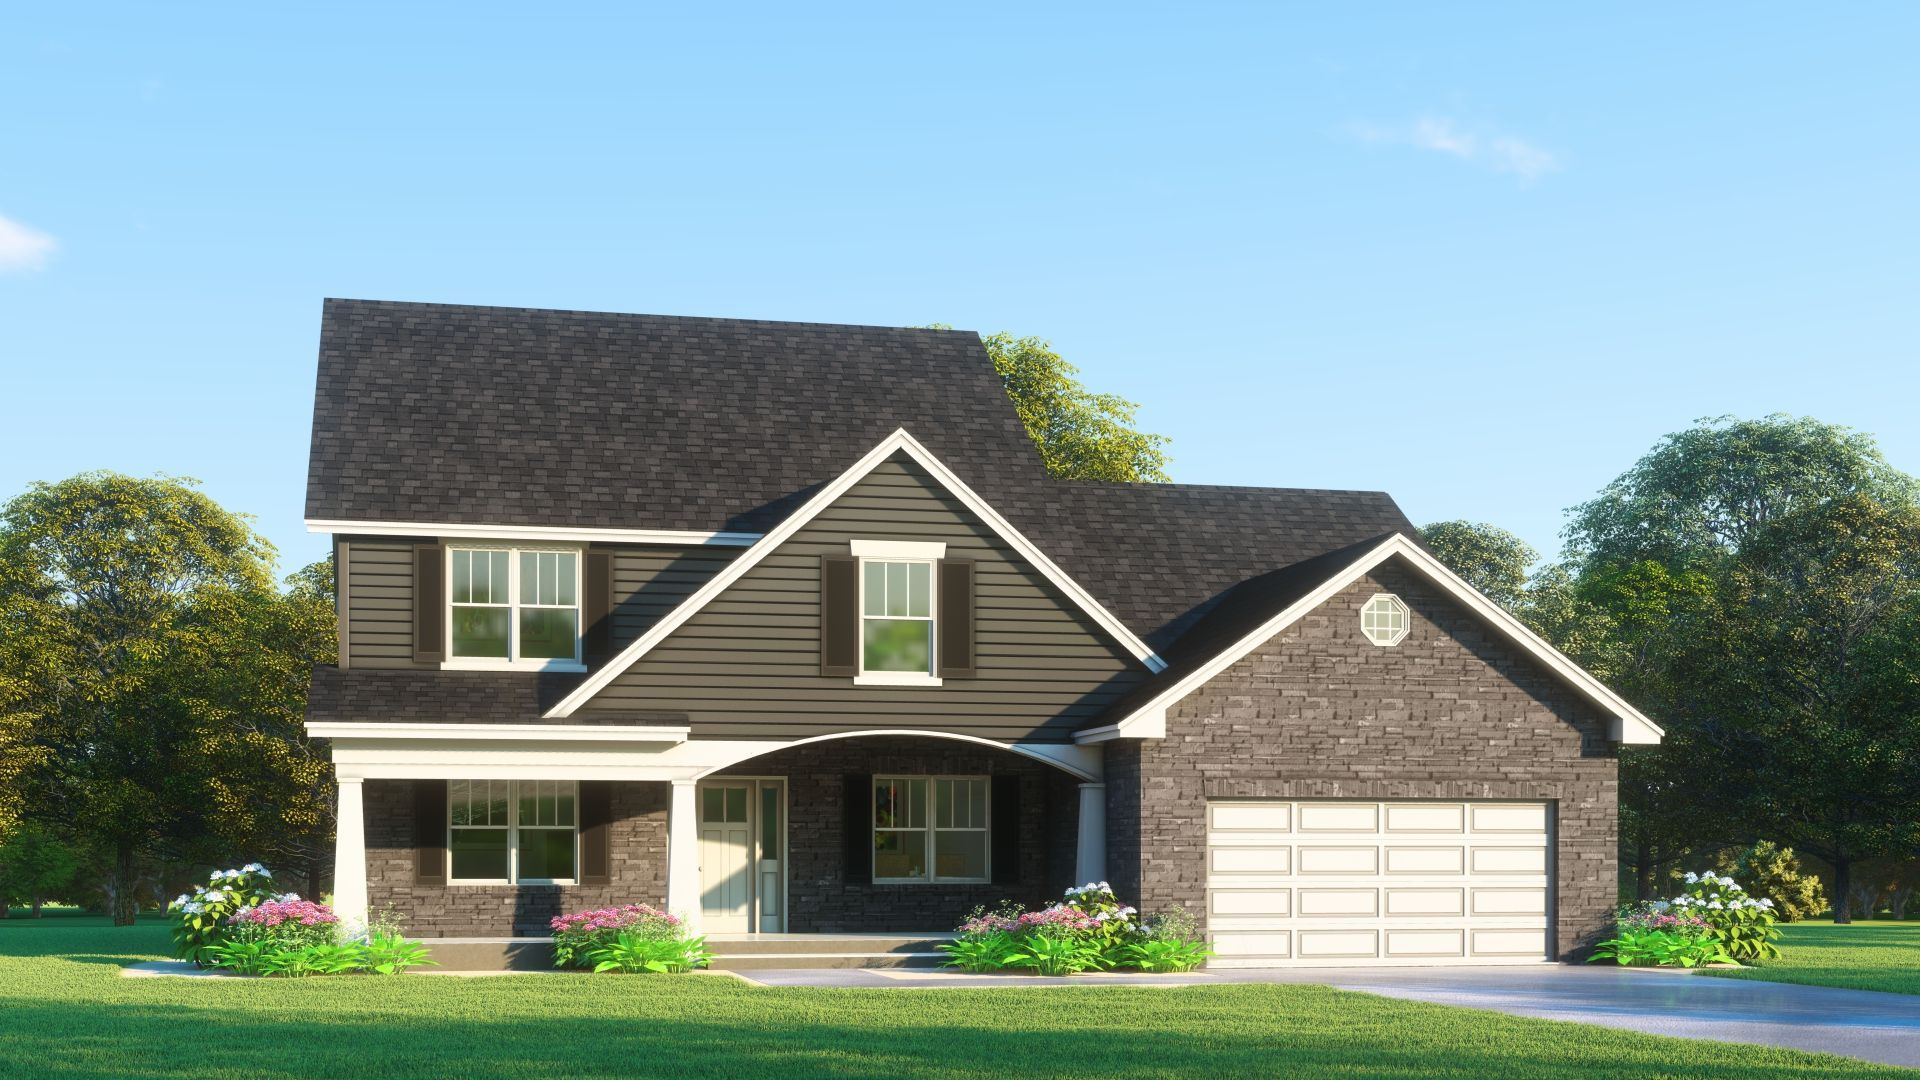 New Homes St. Louis | Sawgrass